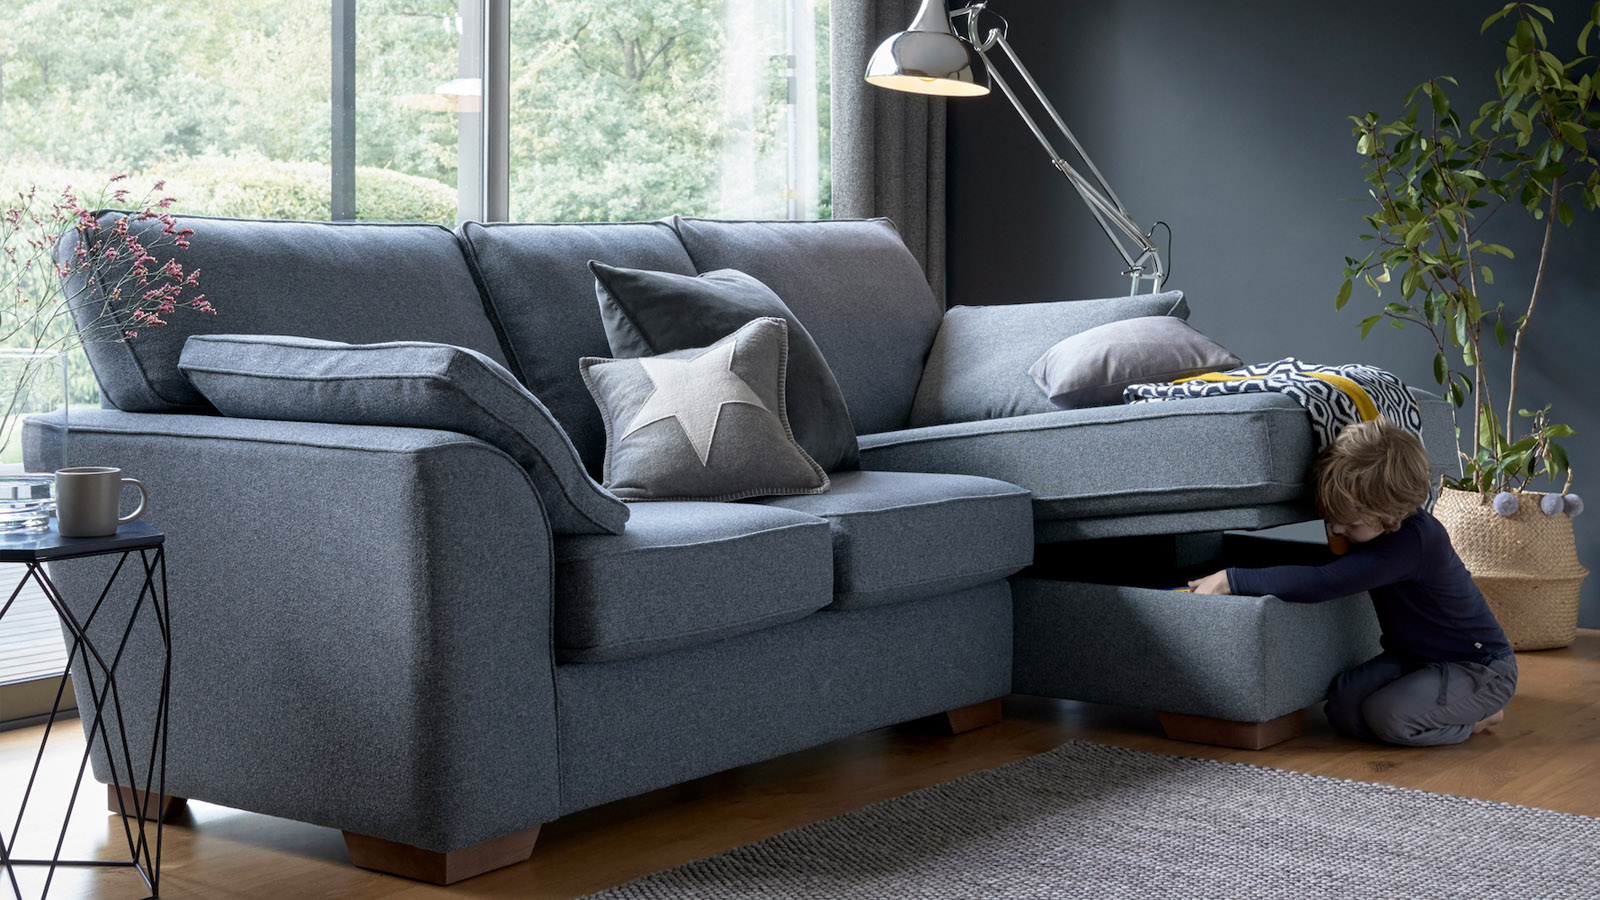 Grey Sofas Uk Next Stylish Sofas To Snap Up Homeware Style Stories Next Official Site